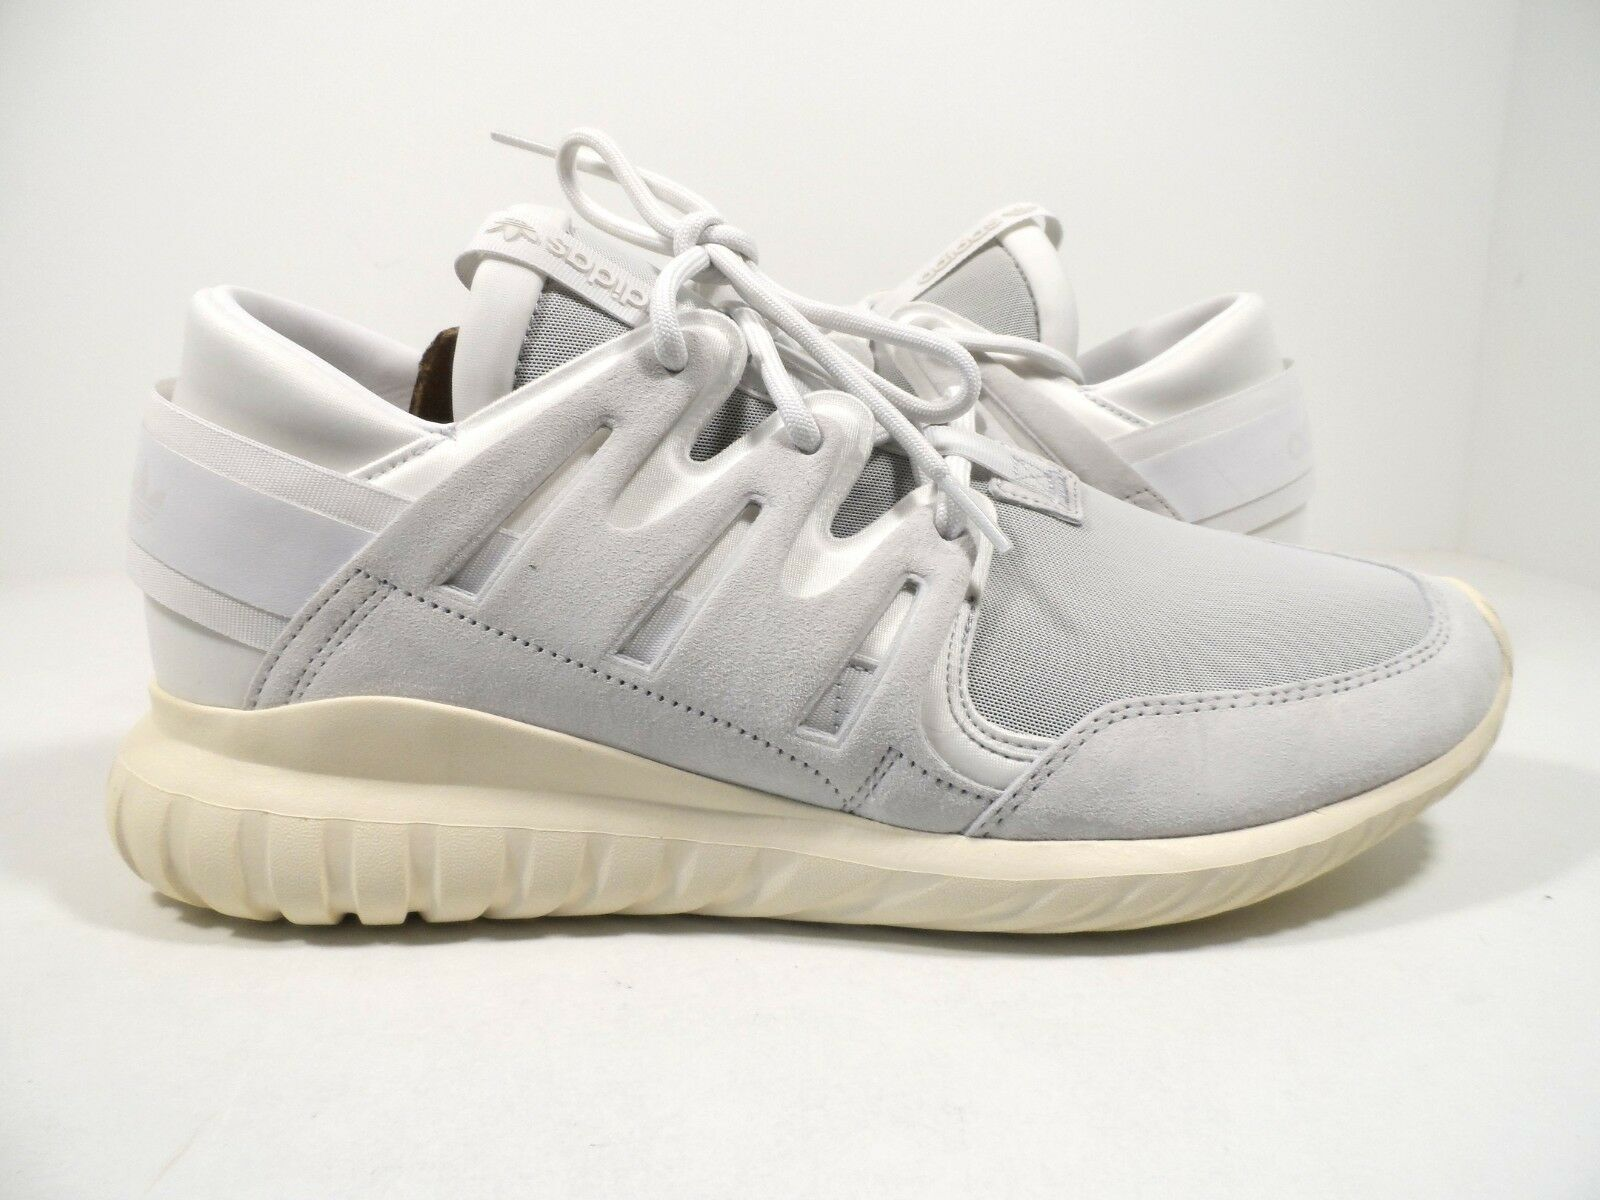 Adidas Originals Men's Tubular Nova Premium Running shoes Vintage White Size 9